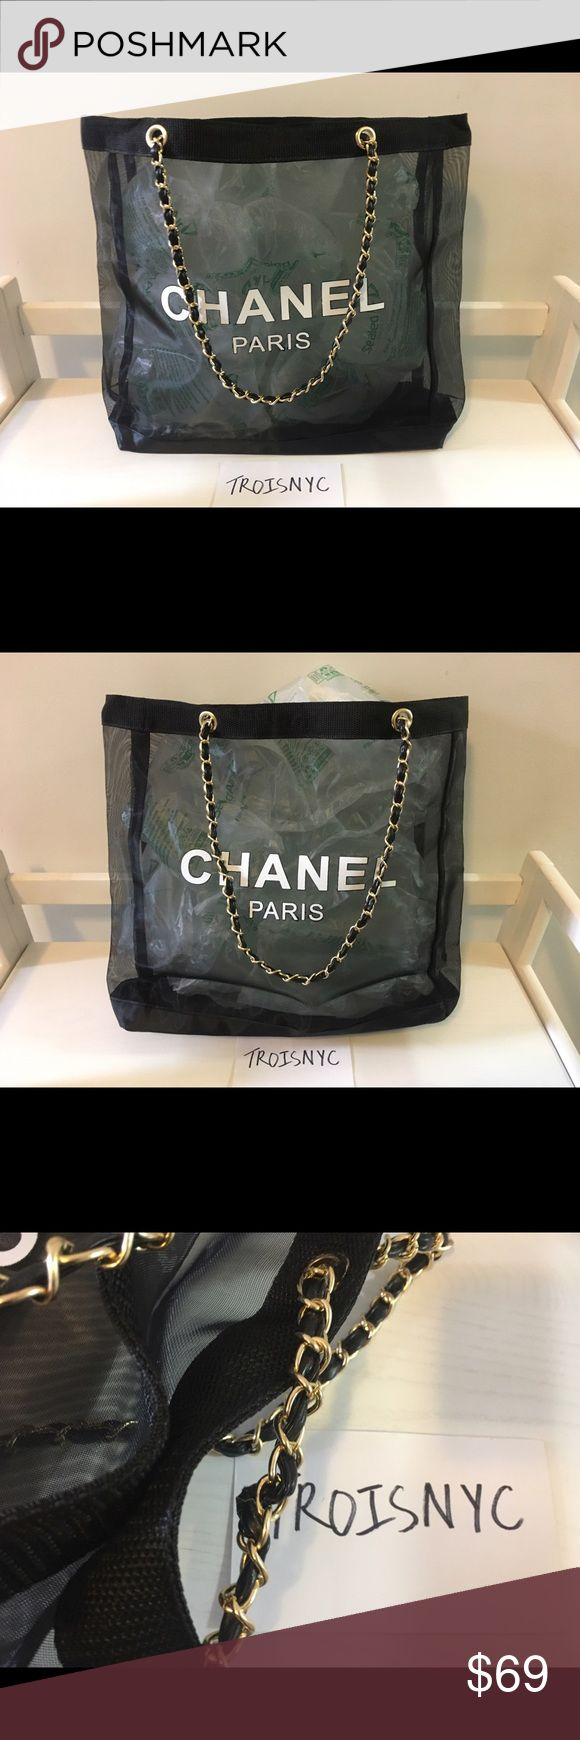 """New Authentic Chanel Large Black Tote Bag VIP Gift This new and authentic large black logo Chanel Tote bag has """"Chanel Paris"""" on the front and back of the bag. It has a leather like chain strap and a magnetic top closure. Measurements: 14"""" length x 13 3/4"""" height x 4"""" depth. CHANEL Bags Totes"""